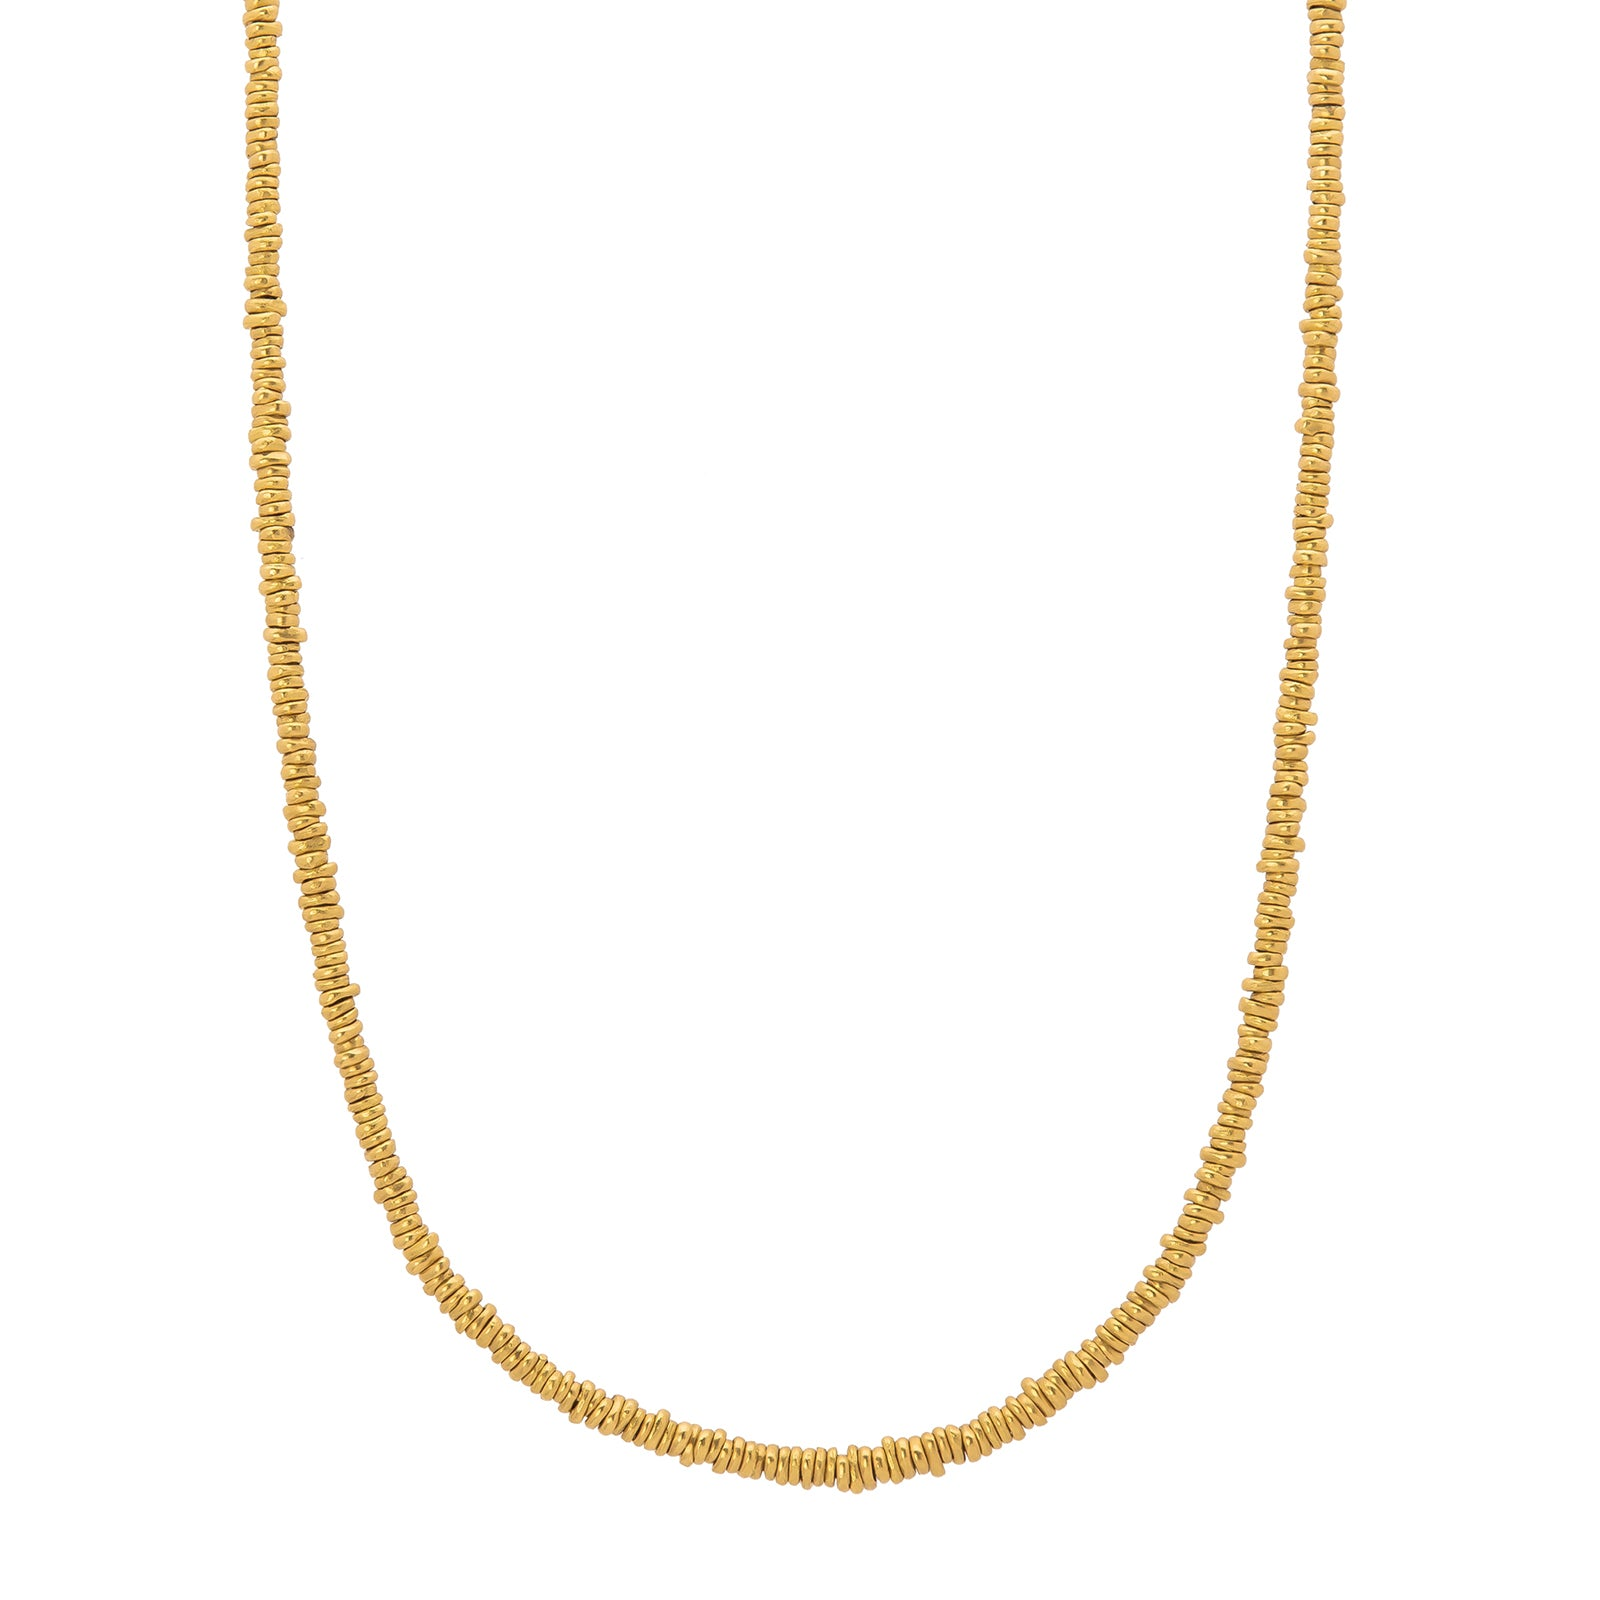 "Eli Halili Gold Nugget & Leather Necklace - 31"" - Necklaces - Broken English Jewelry"